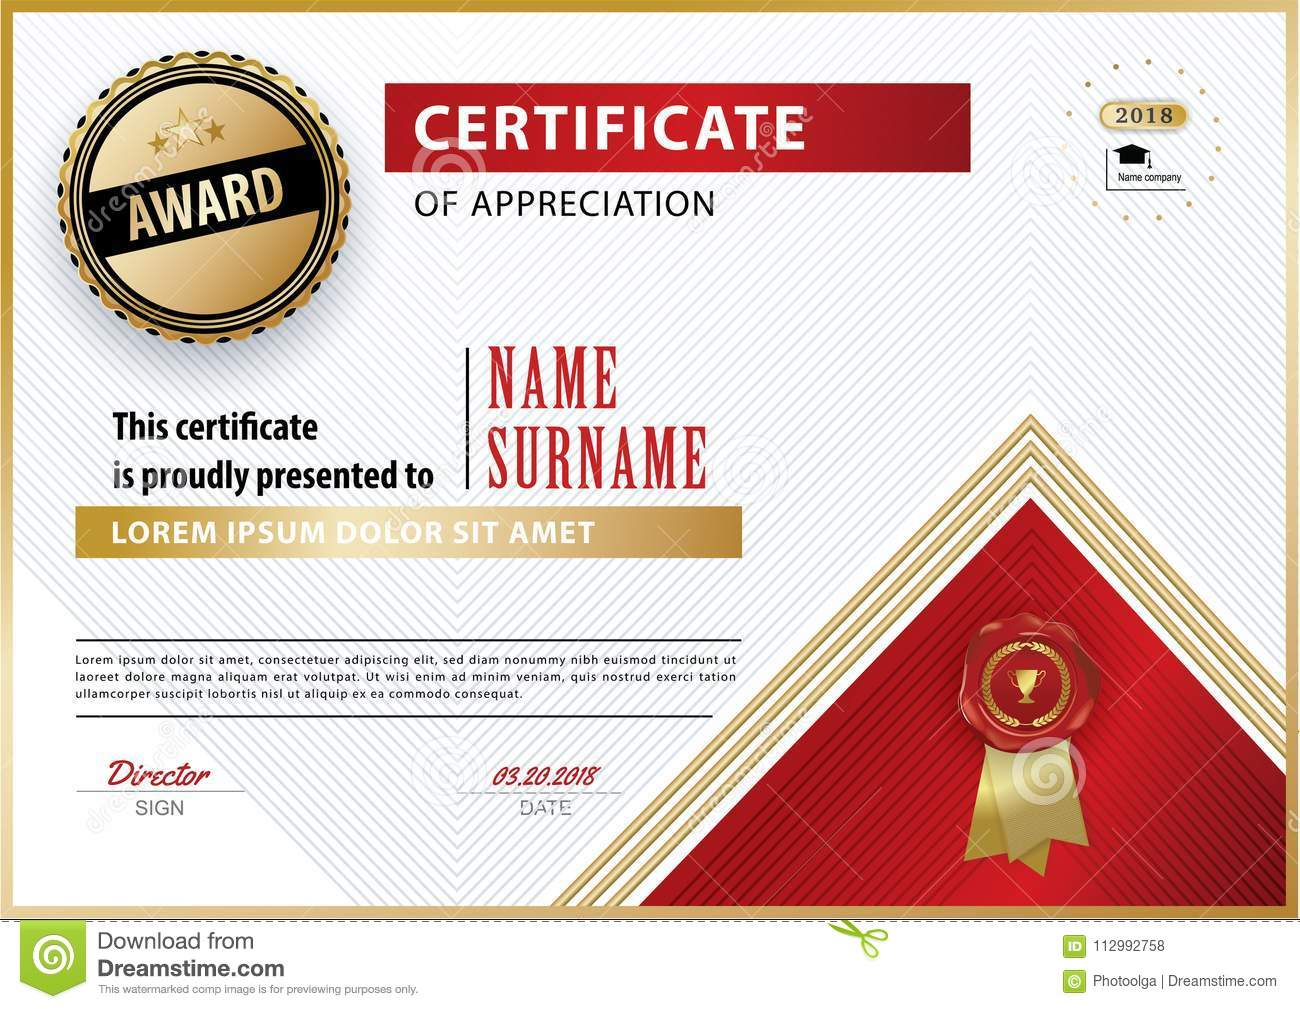 Official white certificate of appreciation award template with gold red shapes and black badge